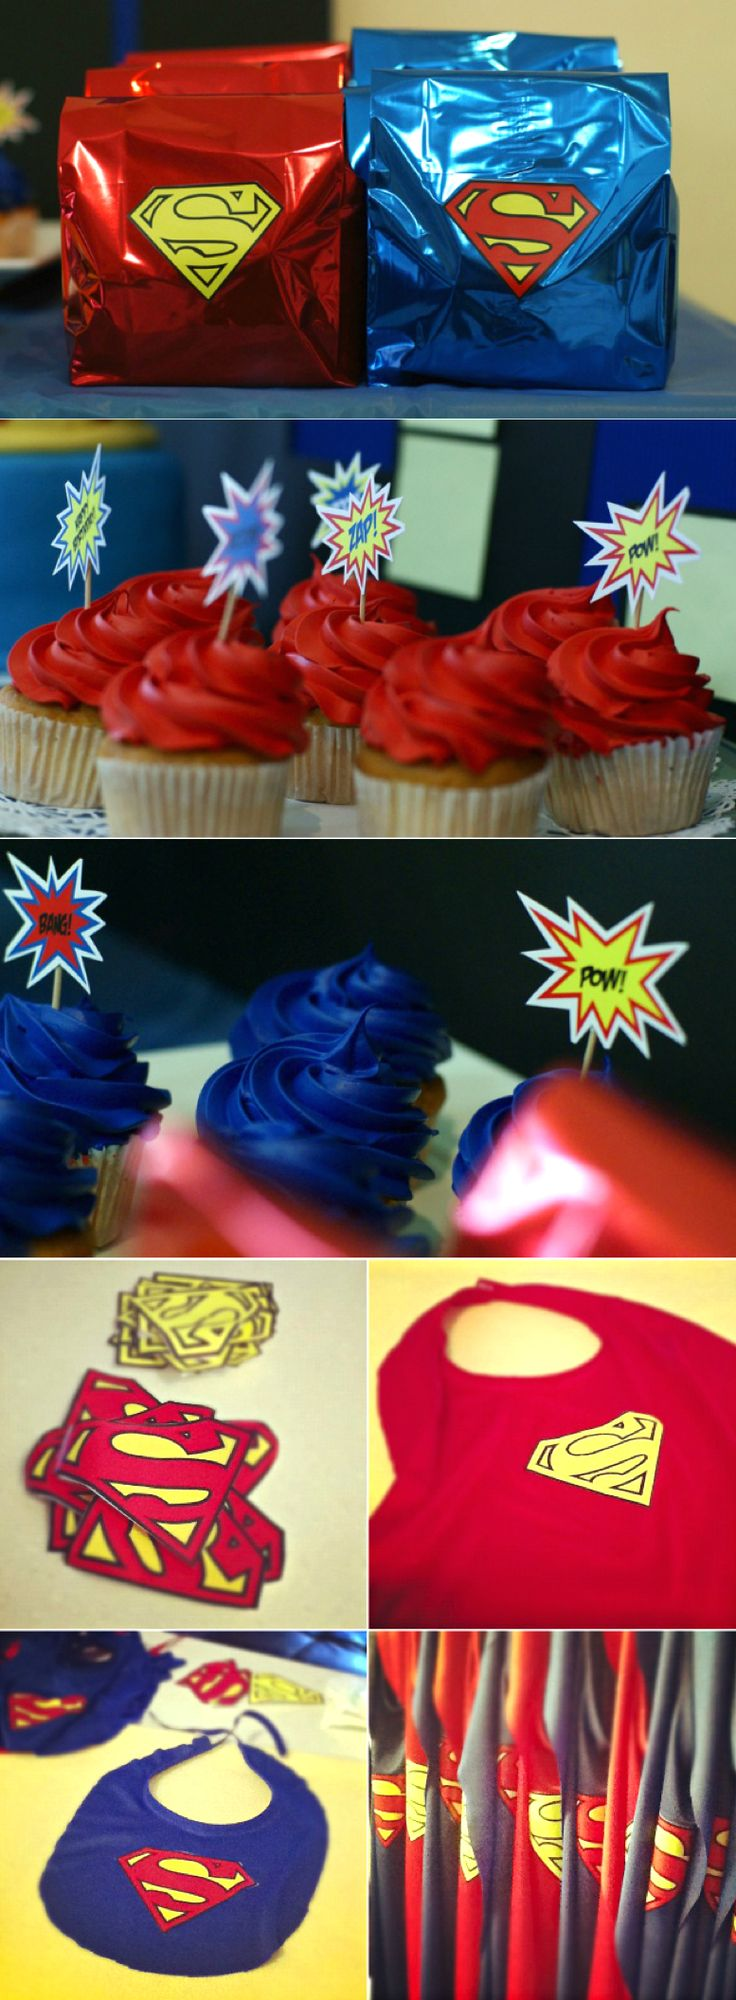 Superman Party Ideas - Ideas para Fiesta de Superman #DIY #party #decor